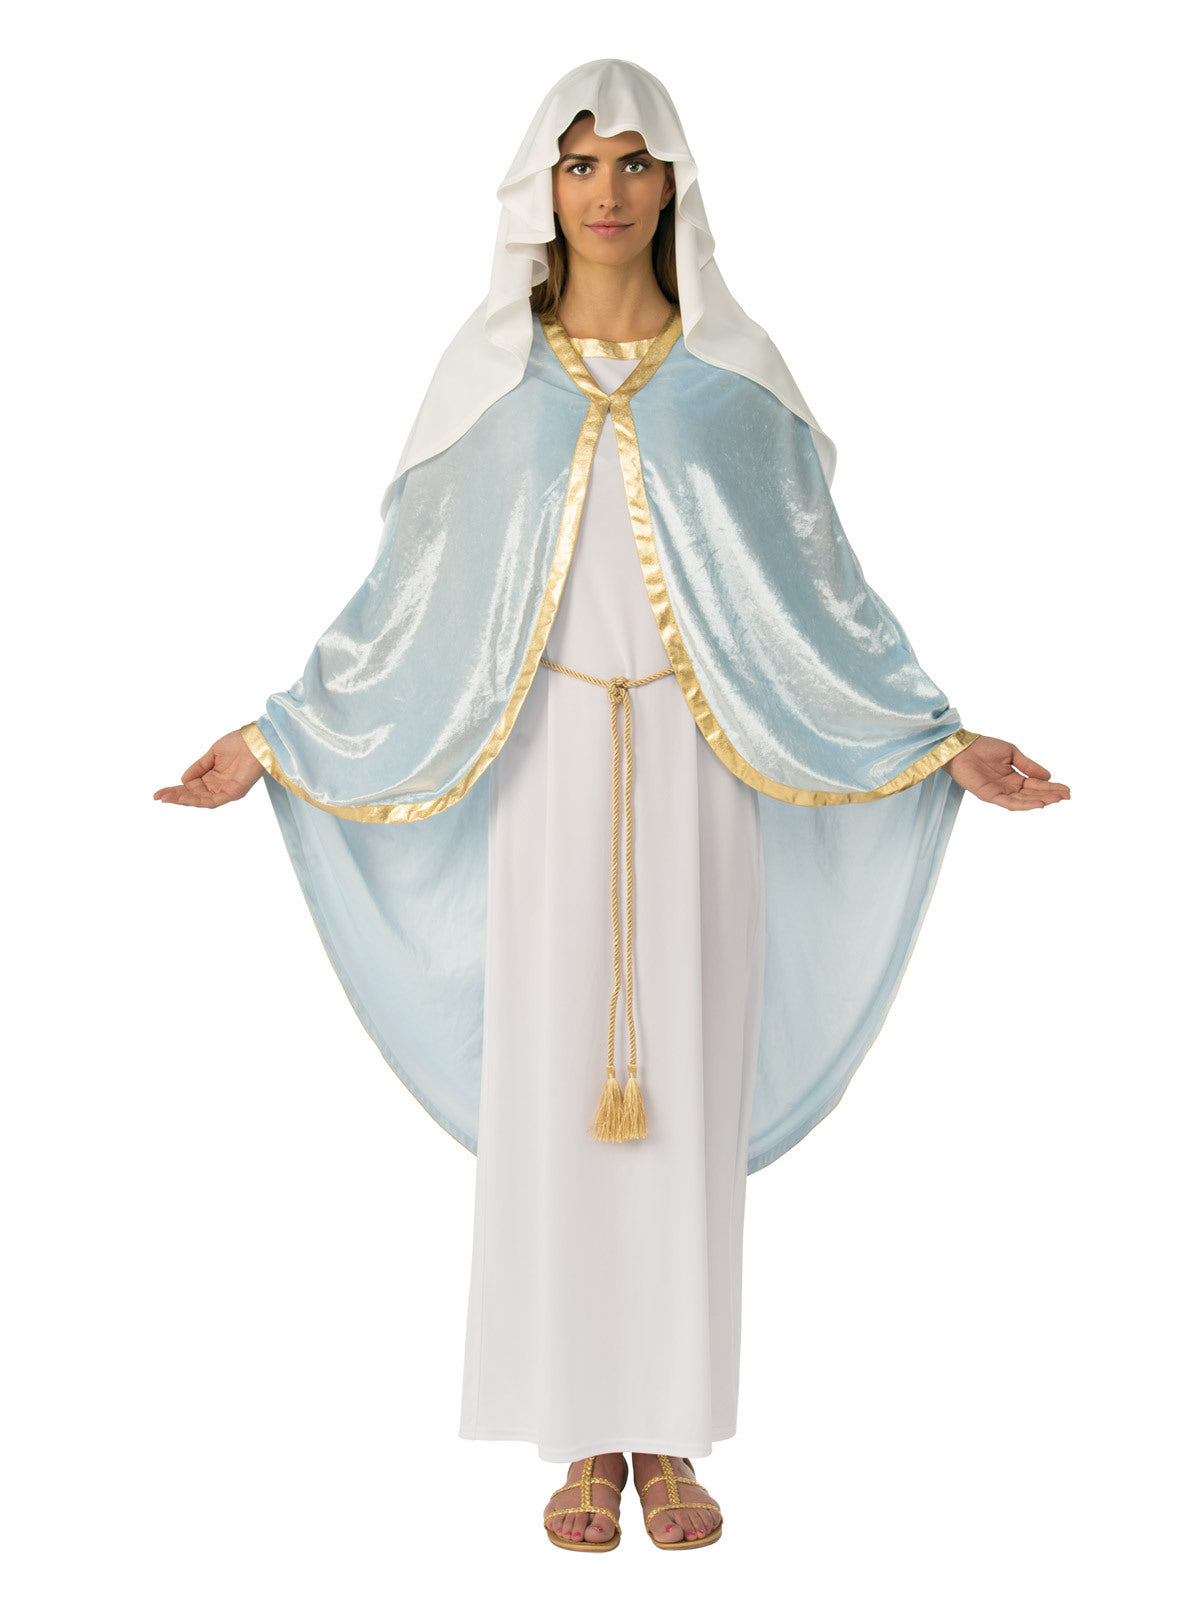 Mary Deluxe Adult Costume - Buy Online Only